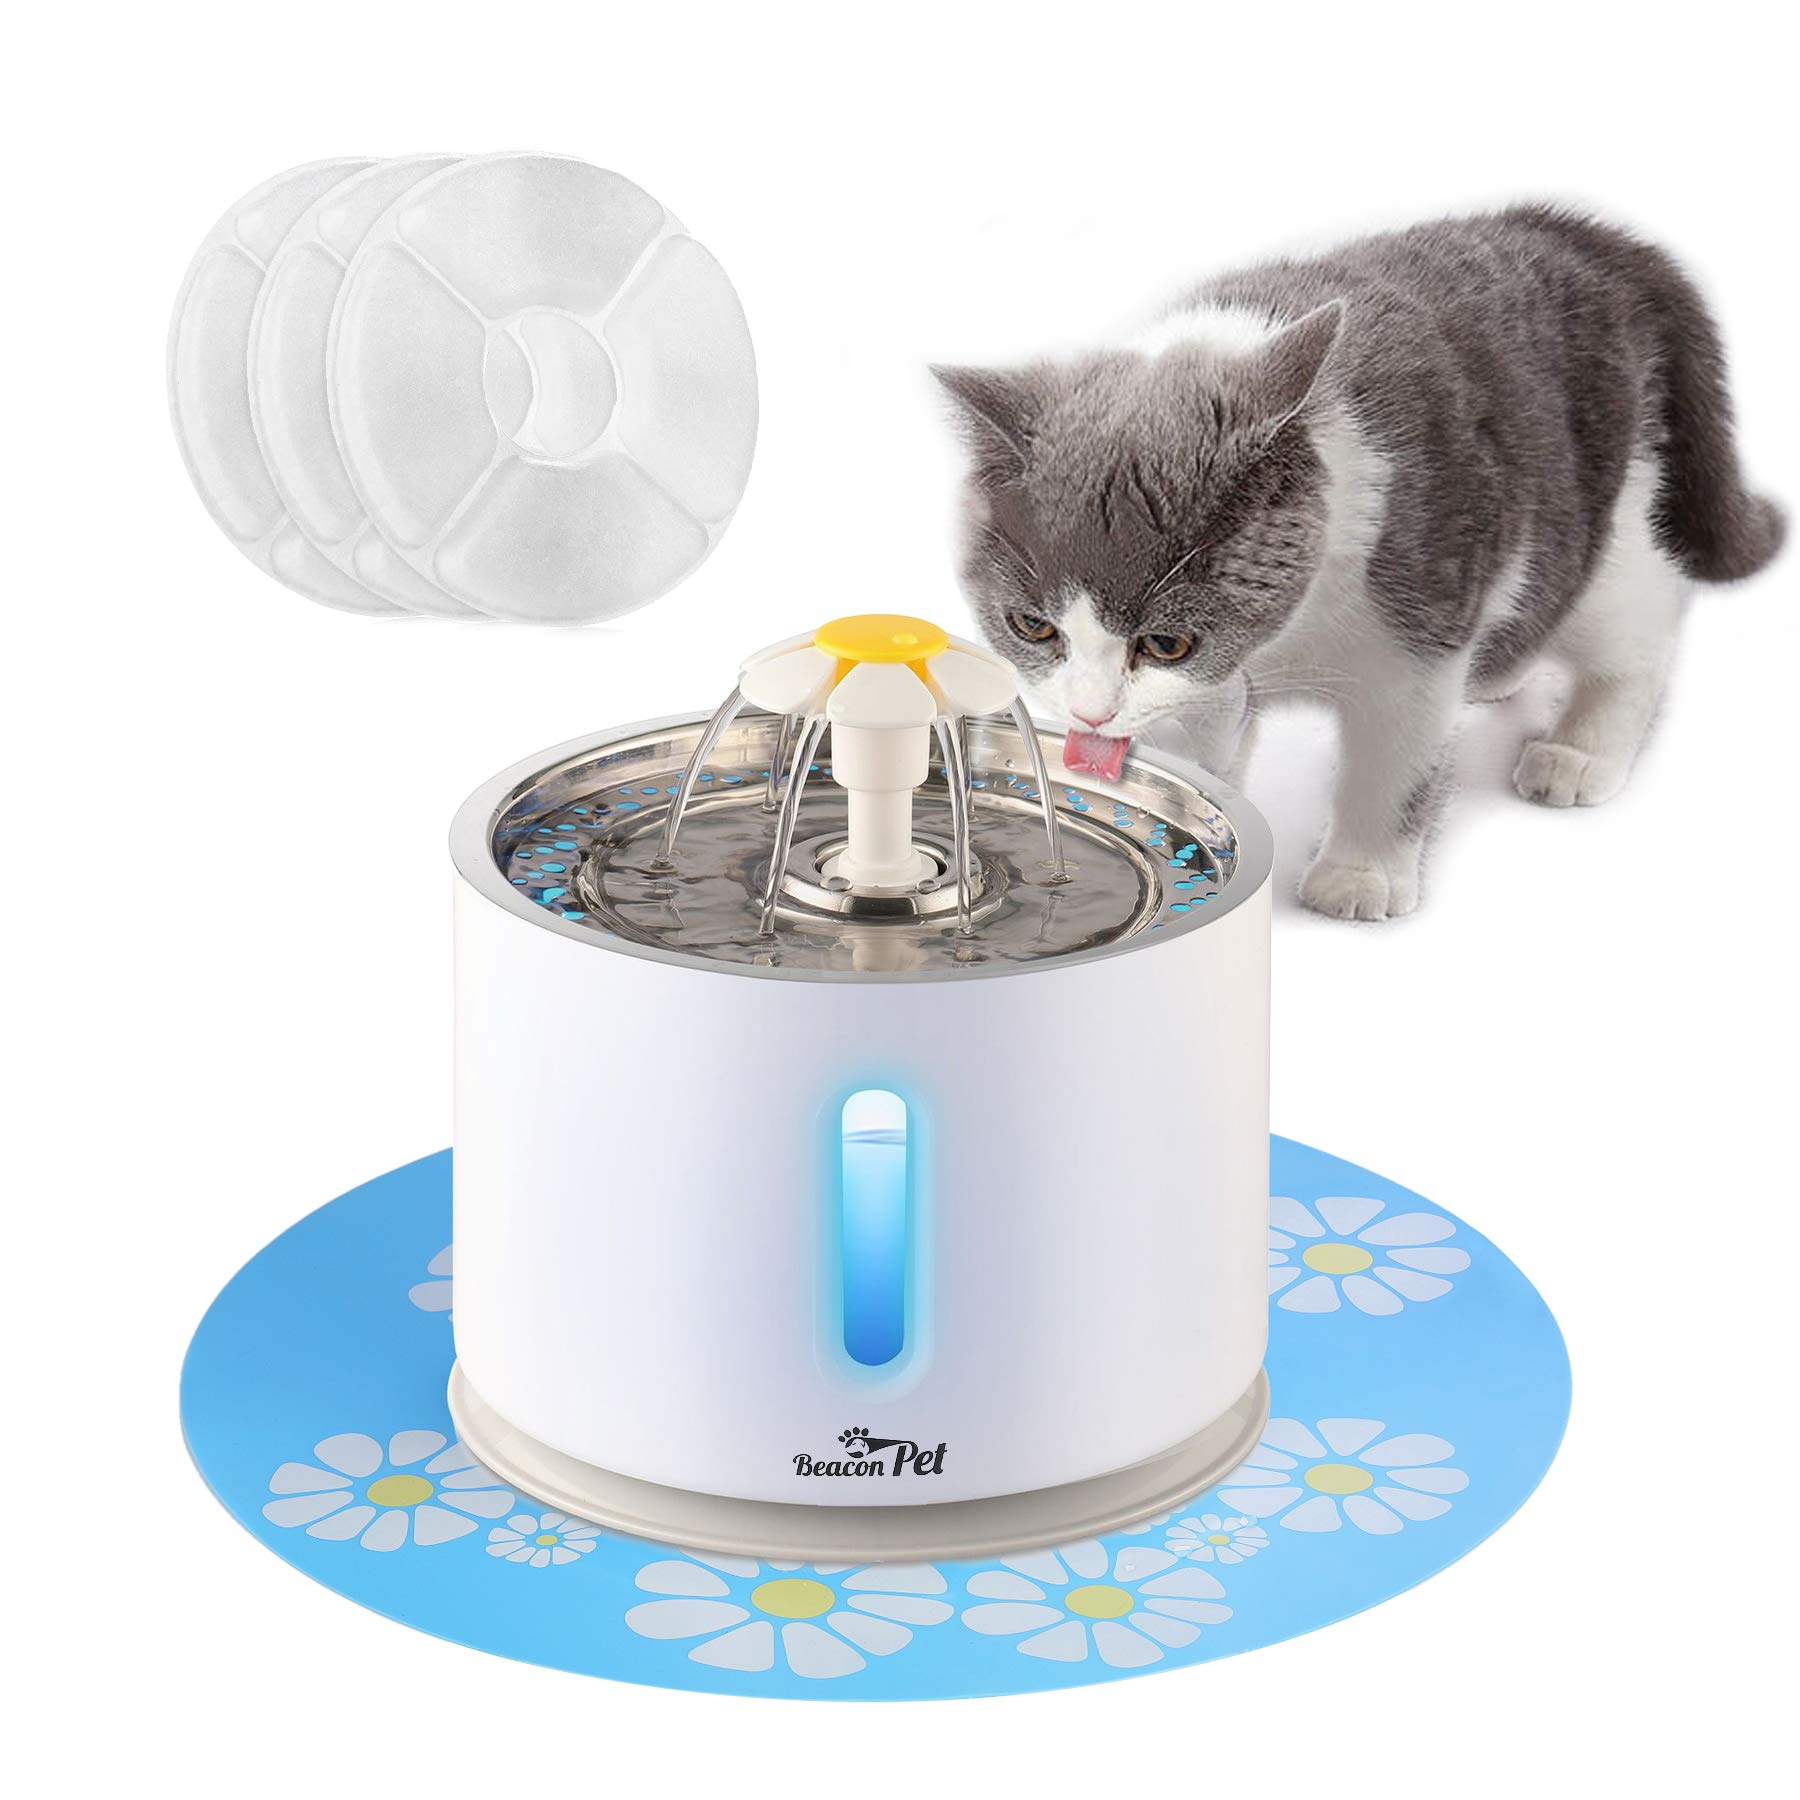 Cat Water Fountain Stainless Steel, LED Indicator 81oz/2.4L Automatic Pet Fountain Dog Water Dispenser with 3 Replacement Filters & 1 Silicone Mat for Cats, Dogs, Multiple Pets (with Flower)